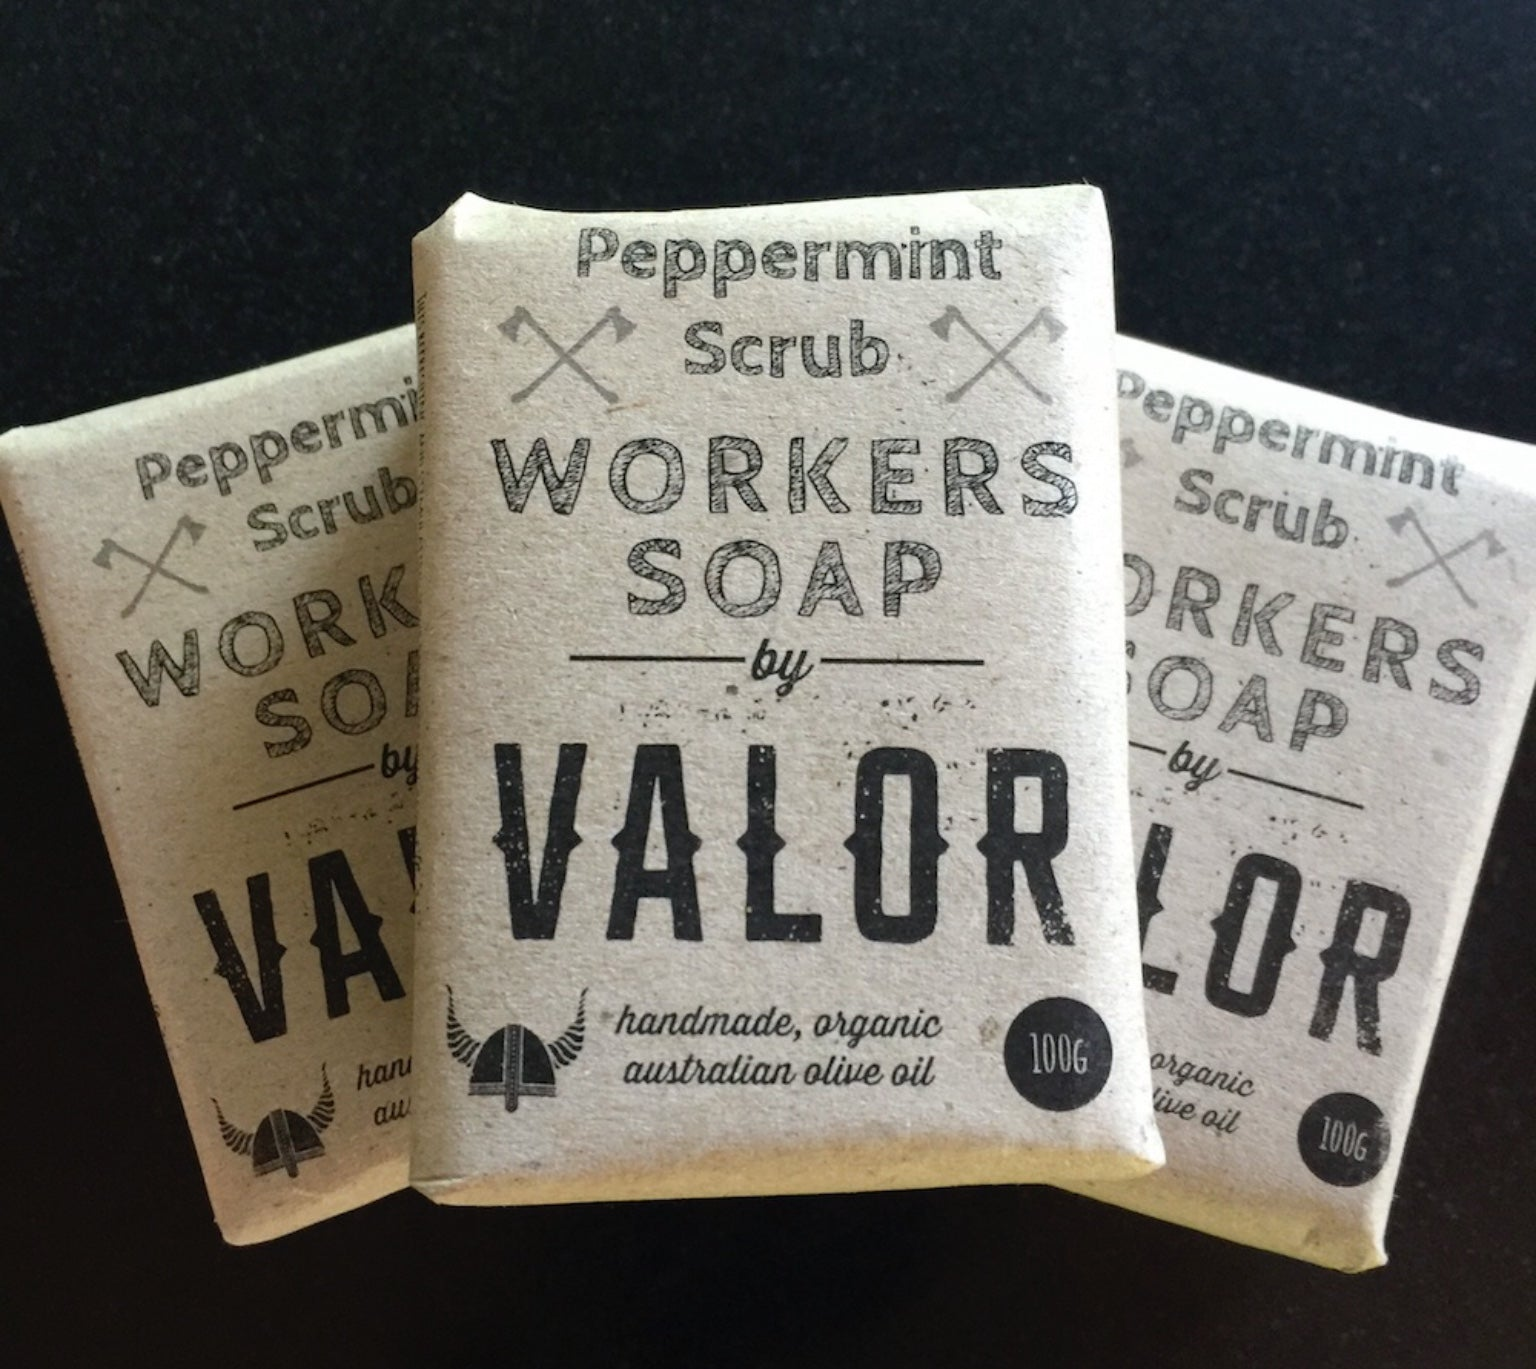 Peppermint Scrub - Workers Soap Bar